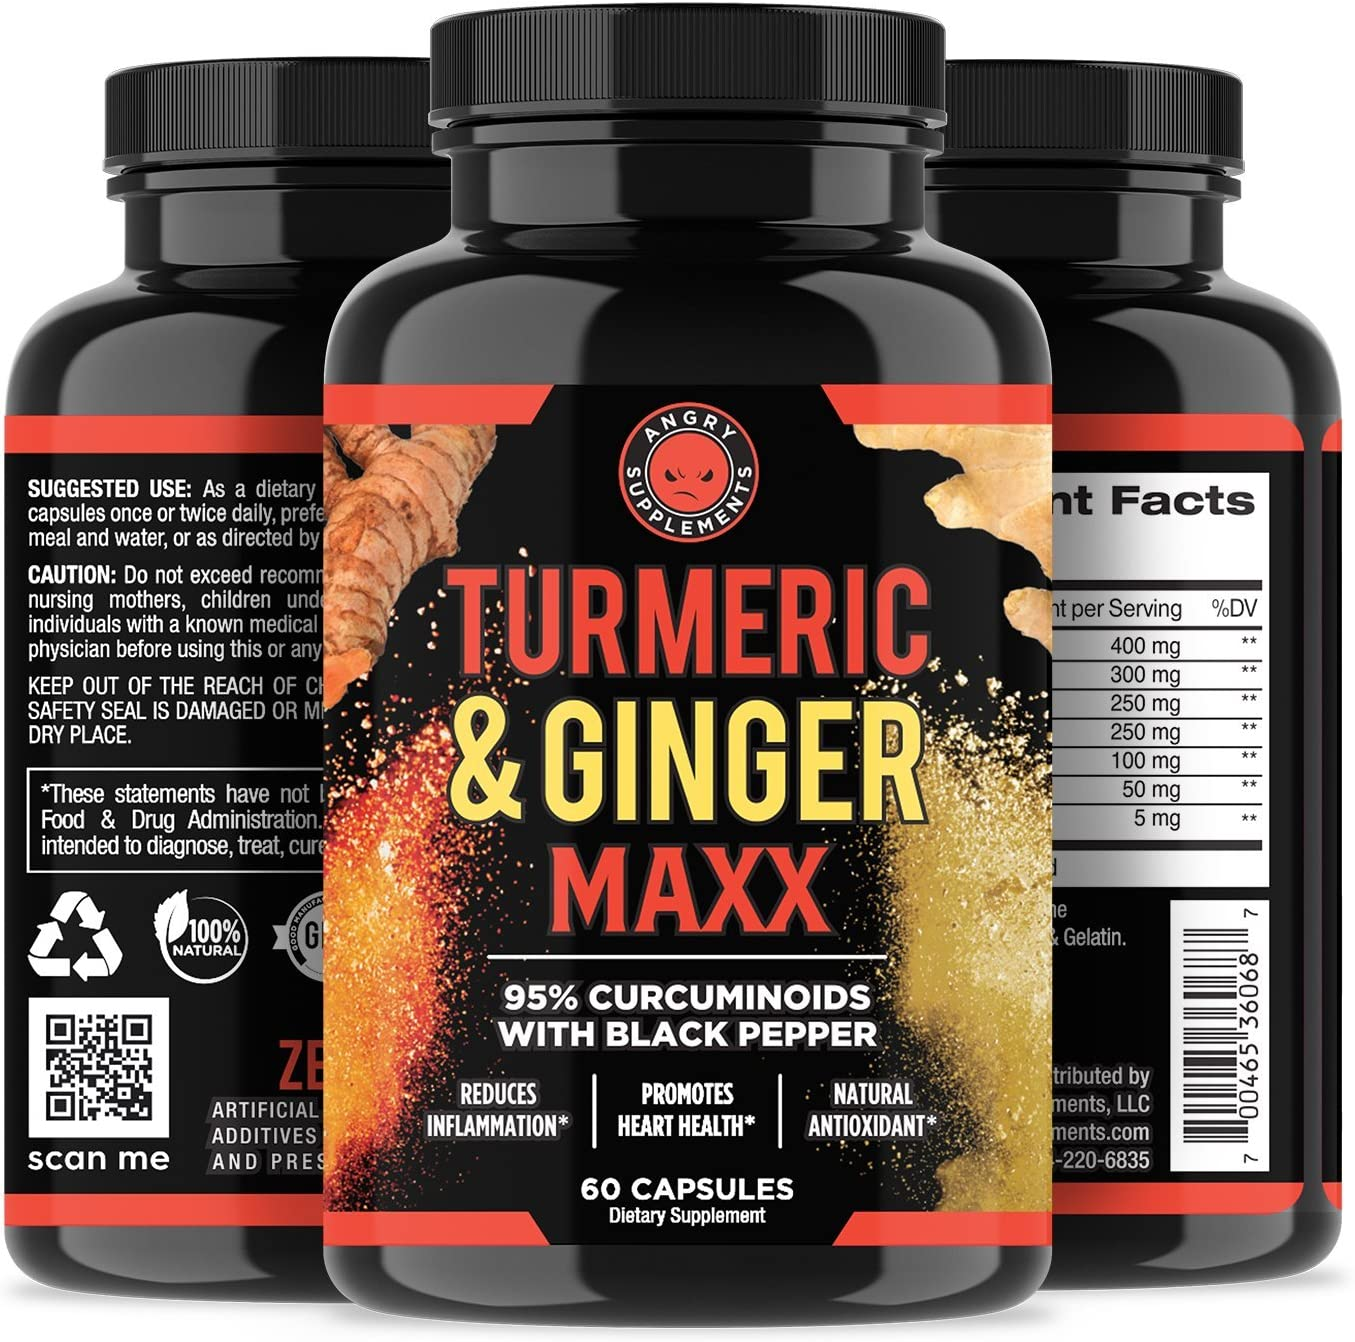 Apple Cider Vinegar + Beetroot and Turmeric & Ginger Capsules (2-Pack Bundle) by Angry Supplements, All-Natural Weight Loss Detox Remedy, Nitric Oxide Booster, Boost Metabolism + Energy (120 Count): Health & Personal Care